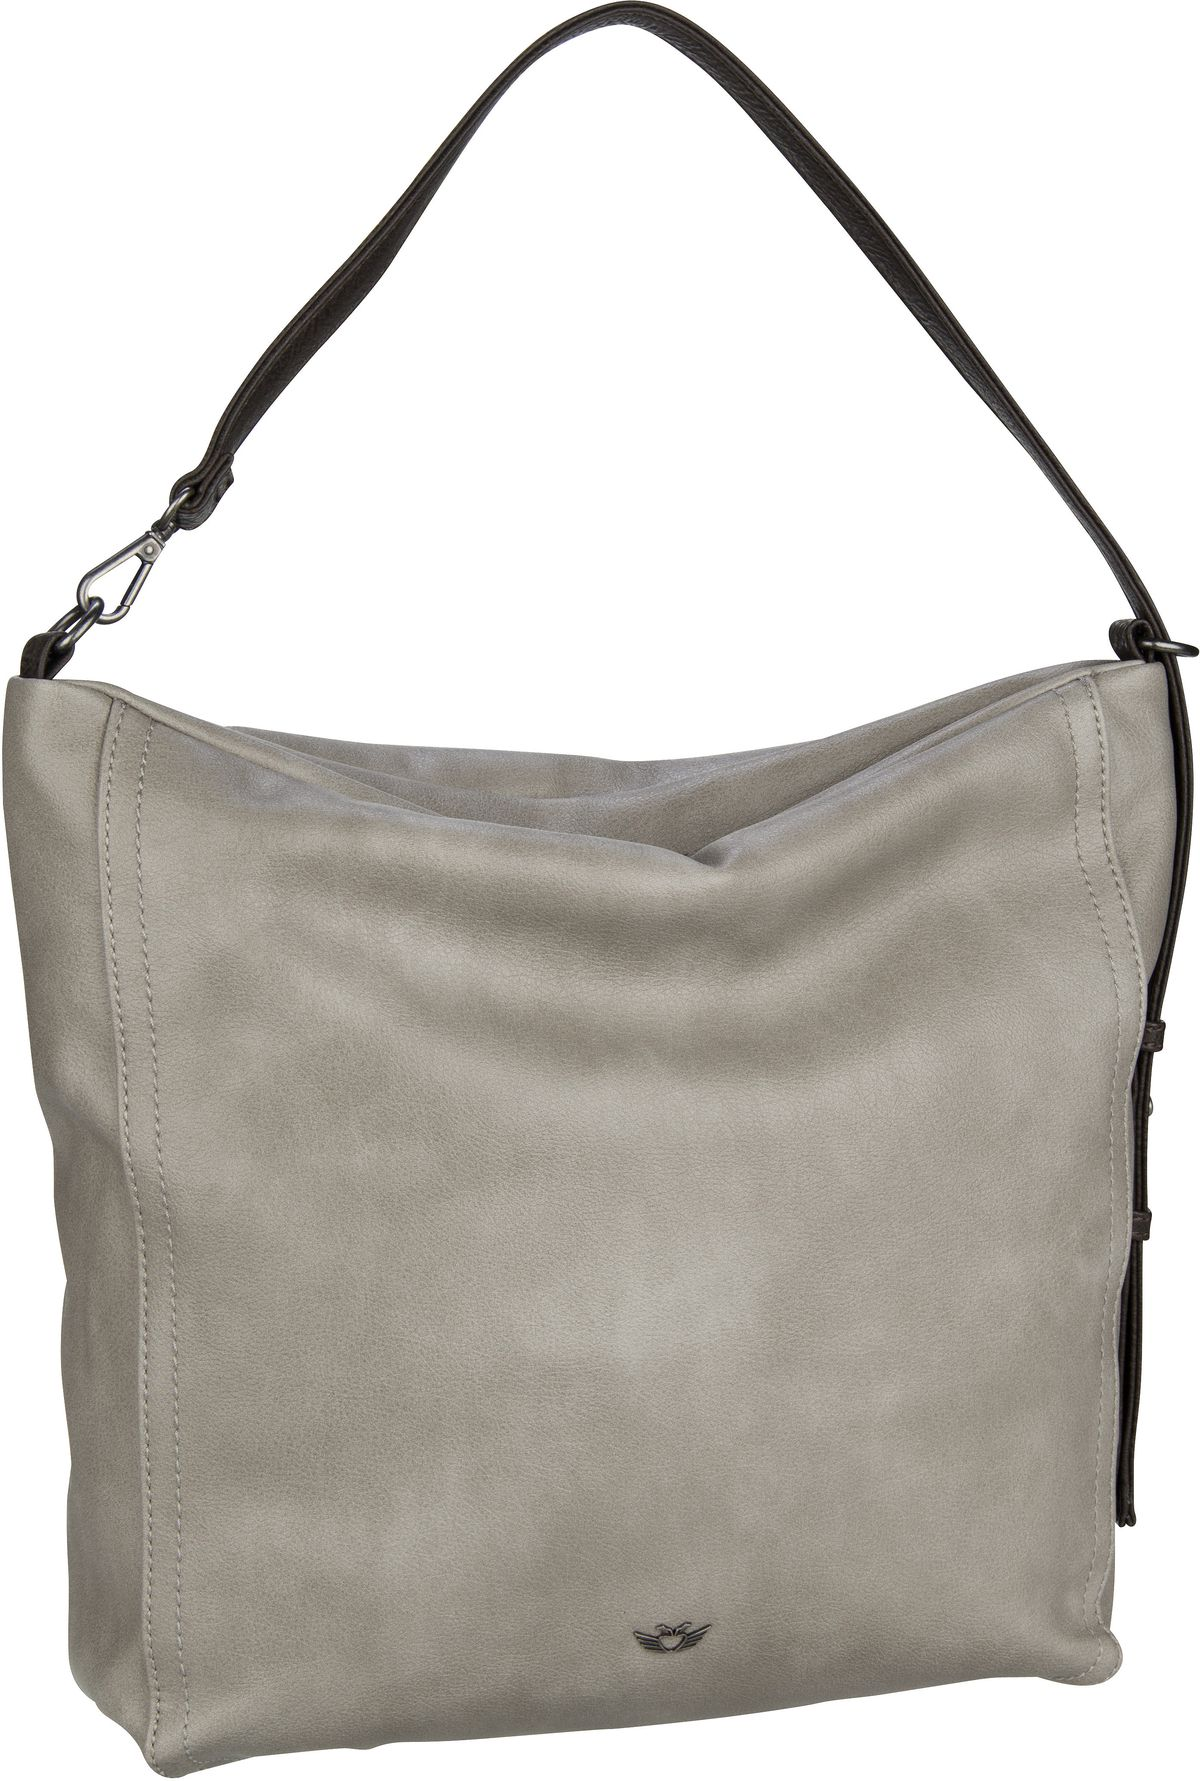 Handtasche Irka Orion Light Grey